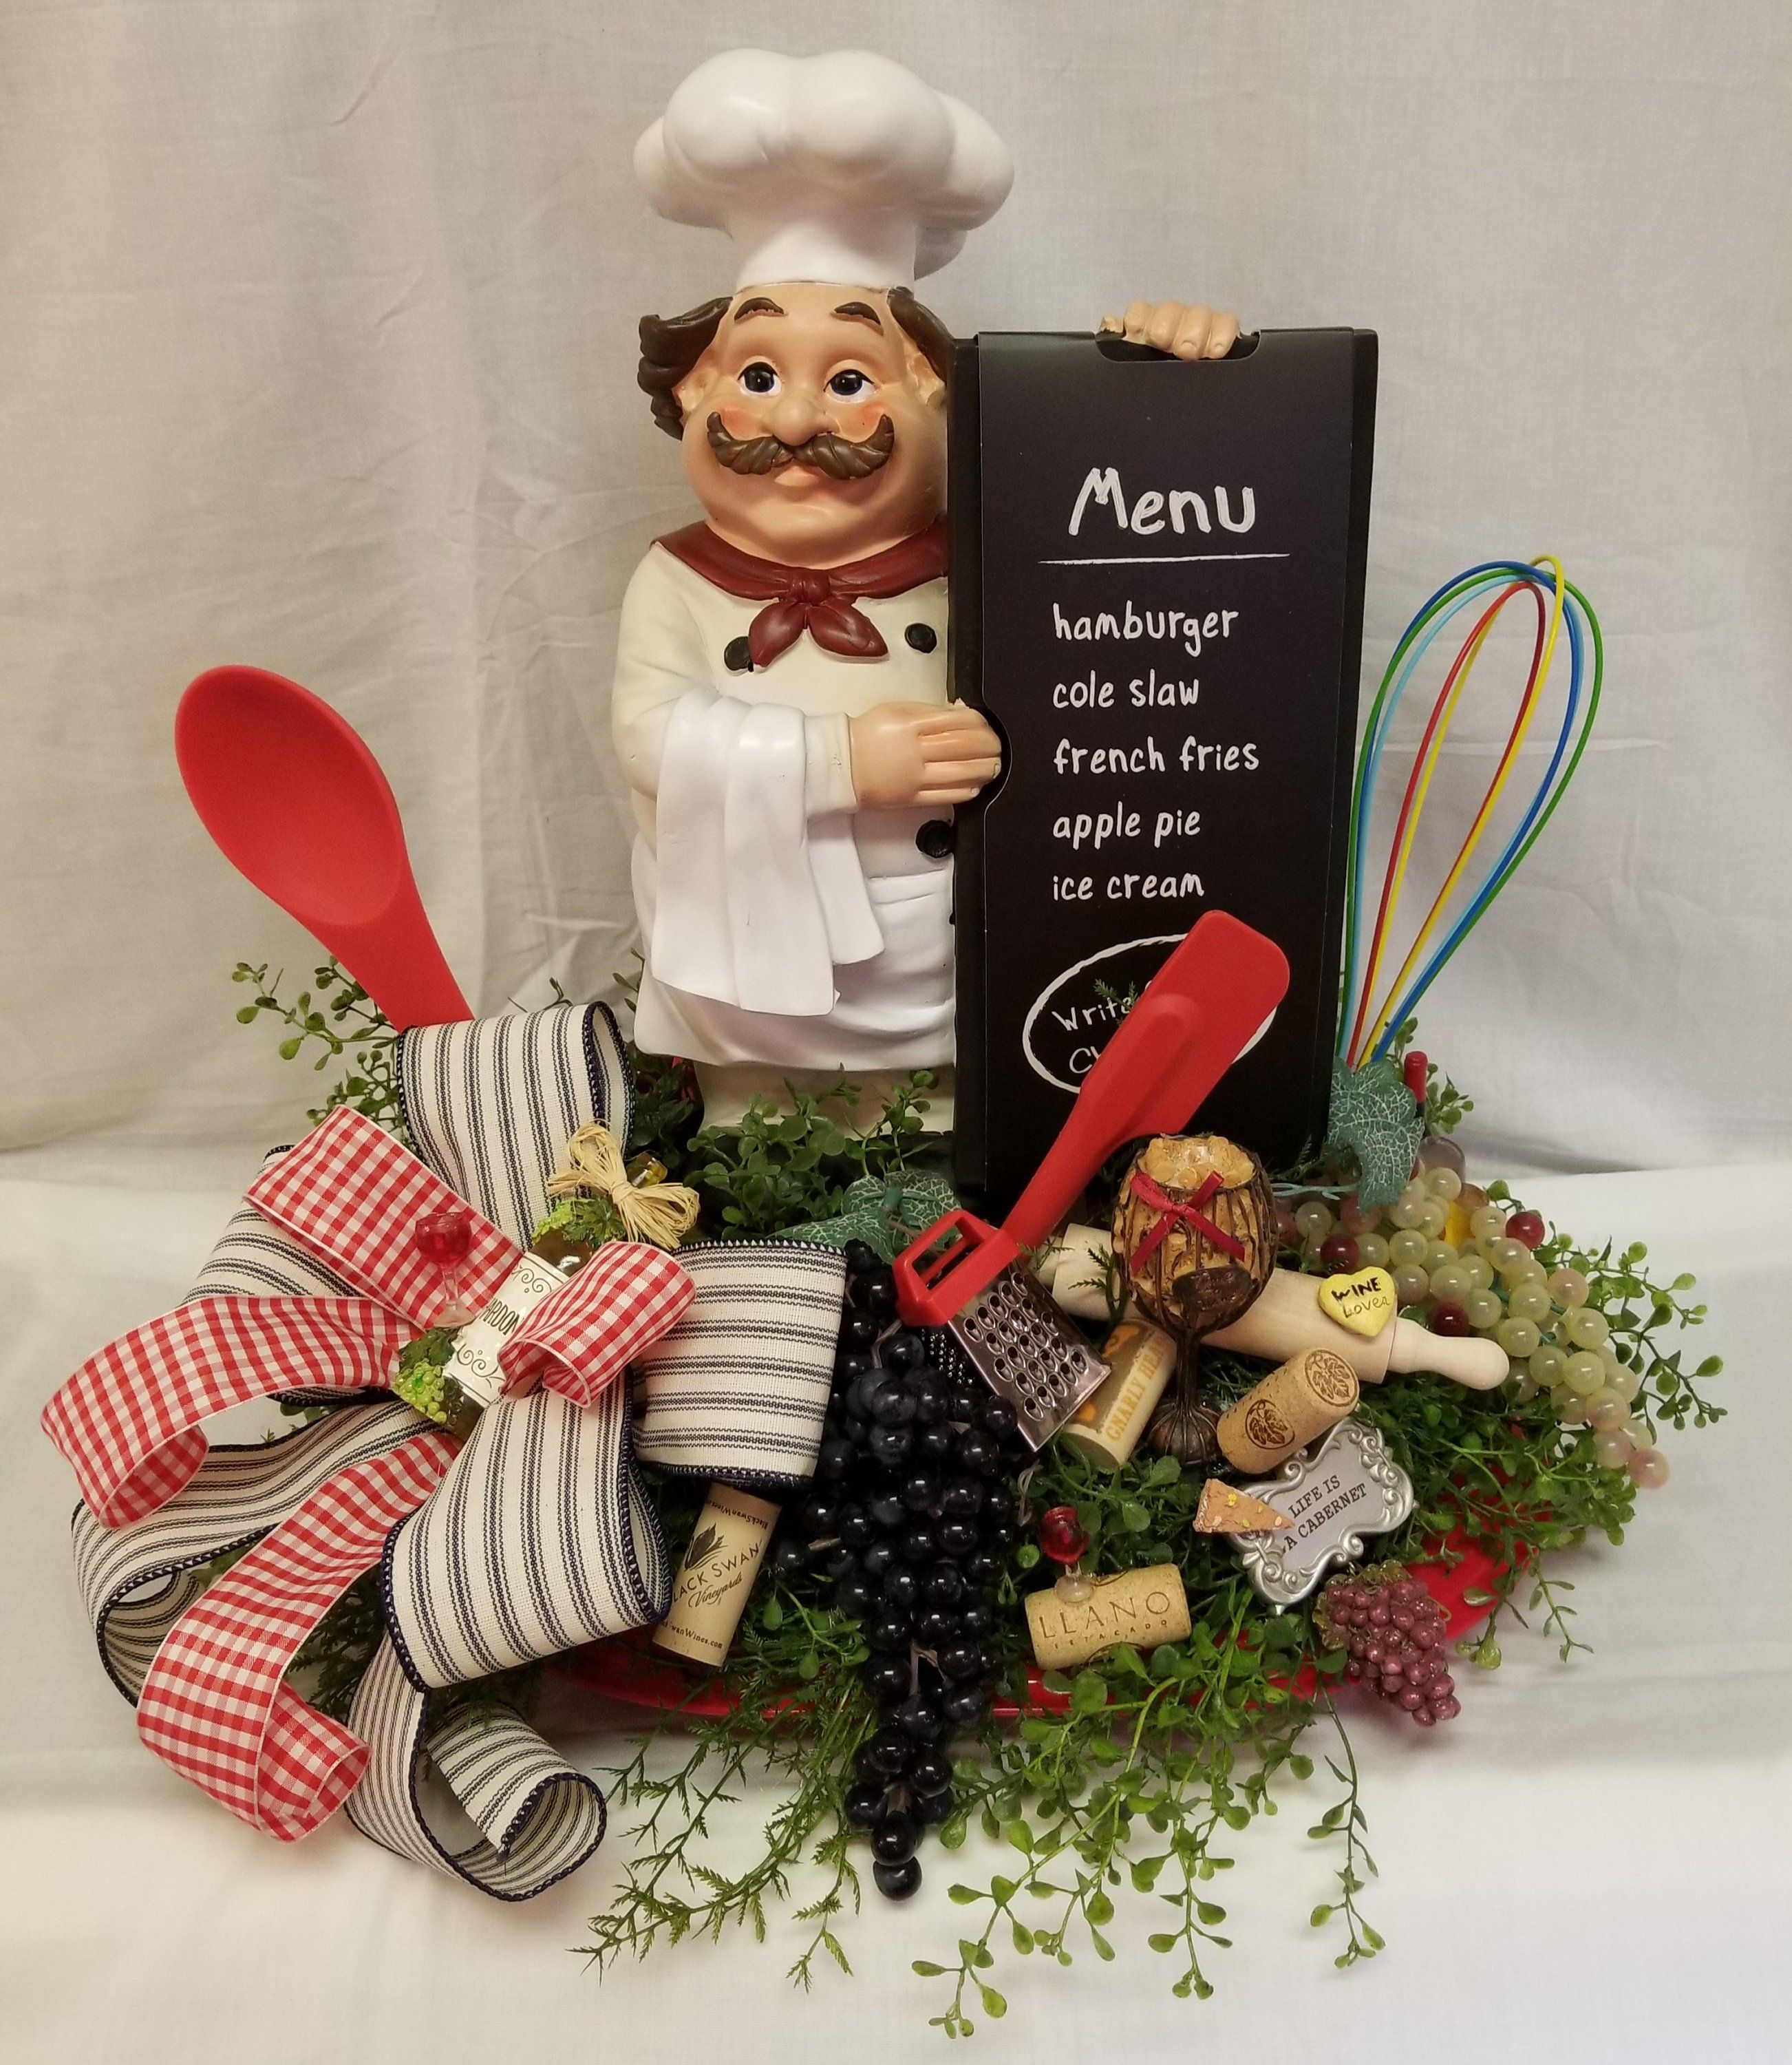 Kitchen Centerpiece, Kitchen Decor, Italian Chef Centerpiece